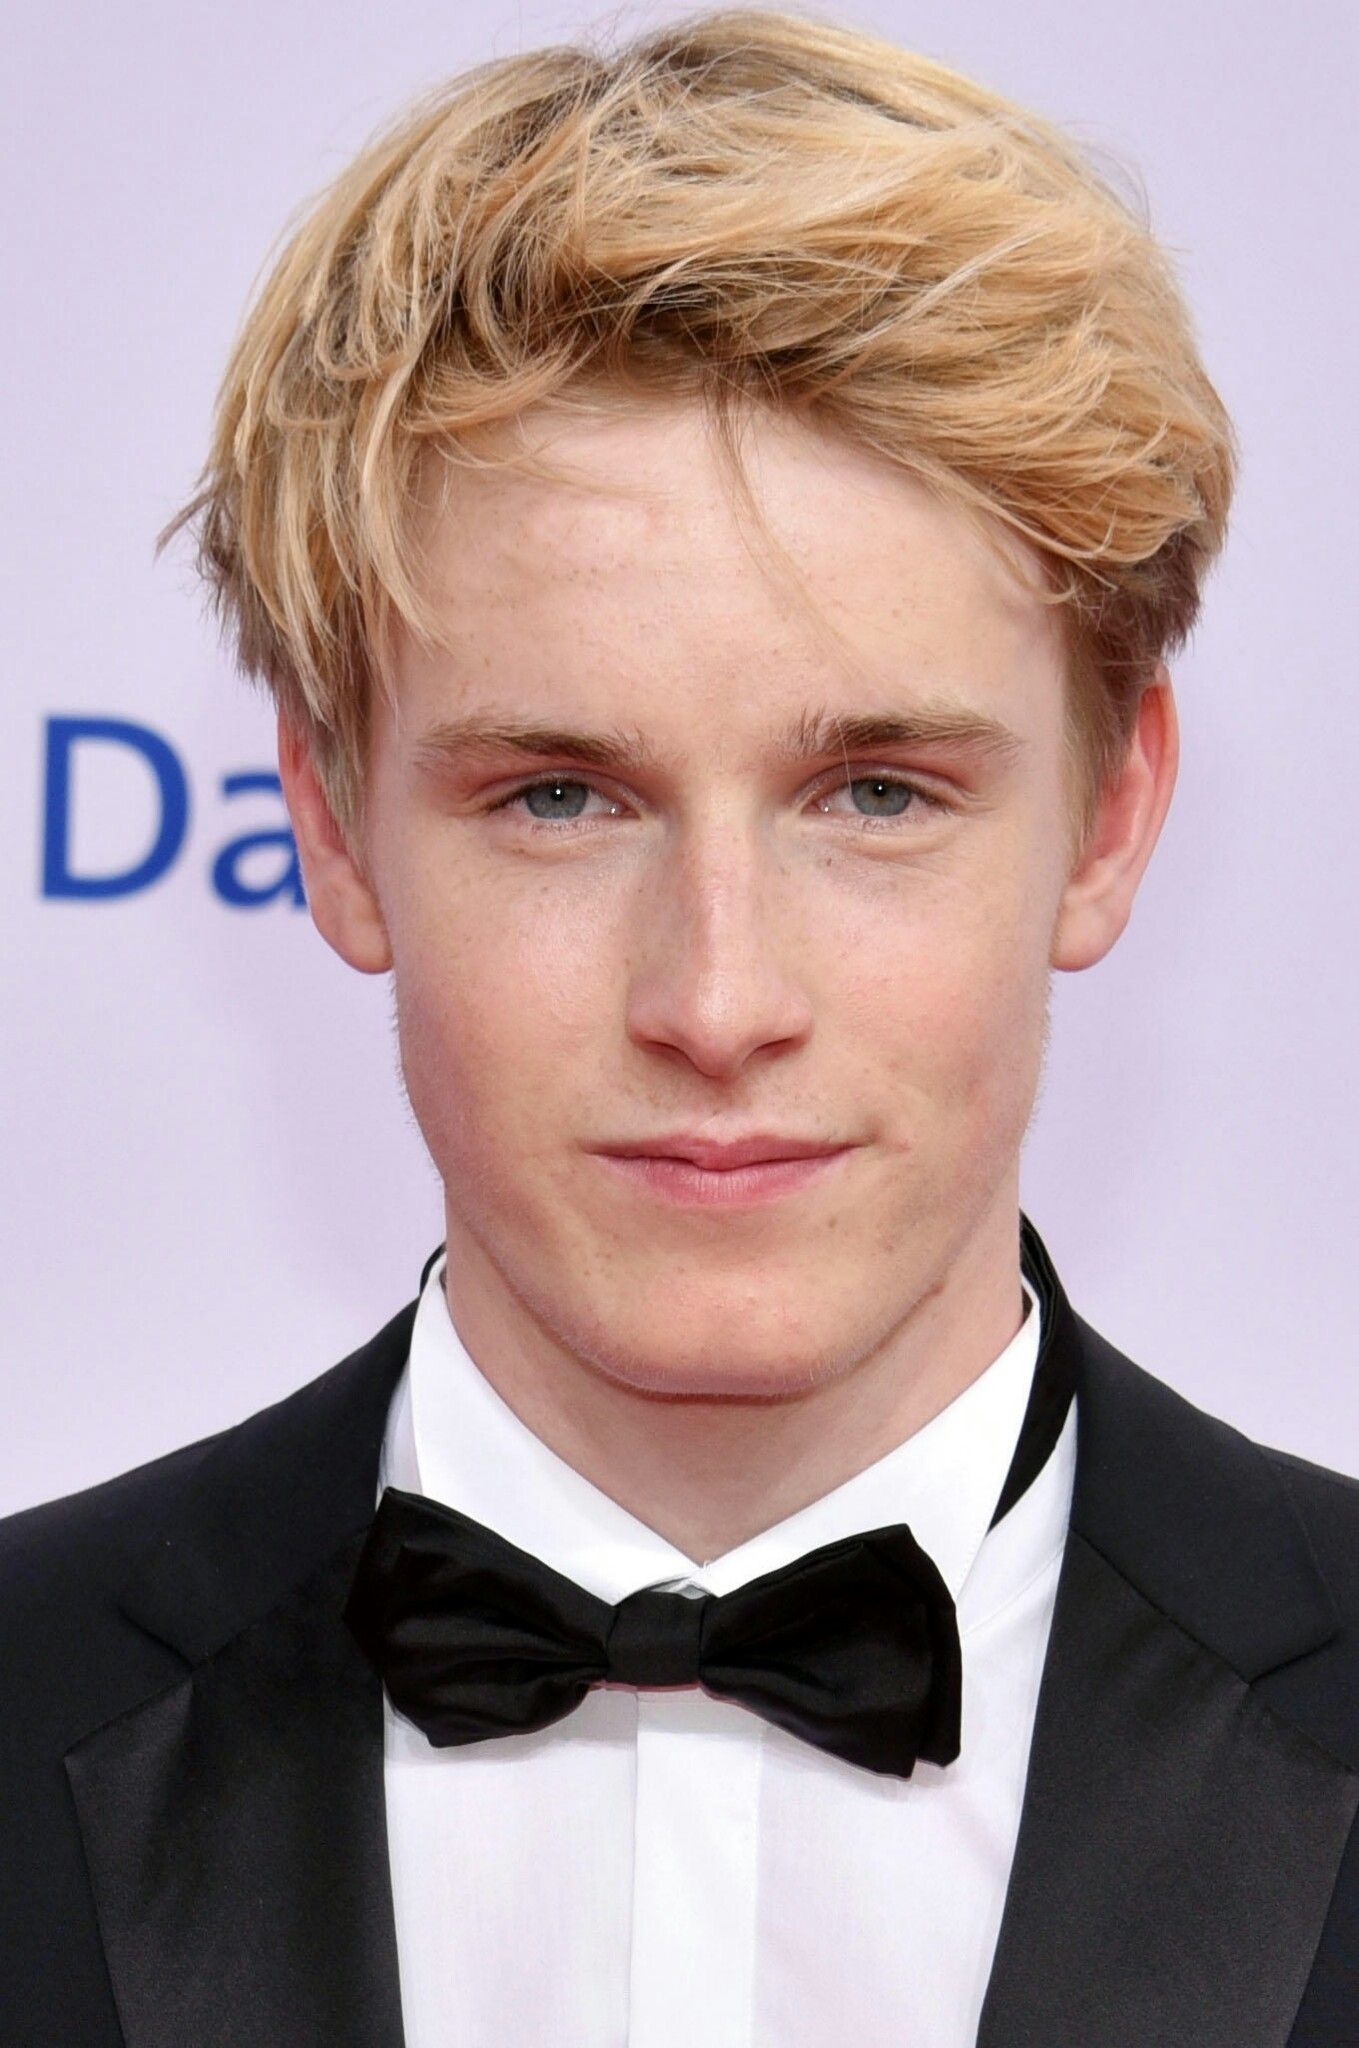 The 21-year old son of father (?) and mother(?) Louis Hofmann in 2018 photo. Louis Hofmann earned a 0.015 million dollar salary - leaving the net worth at 0.8 million in 2018